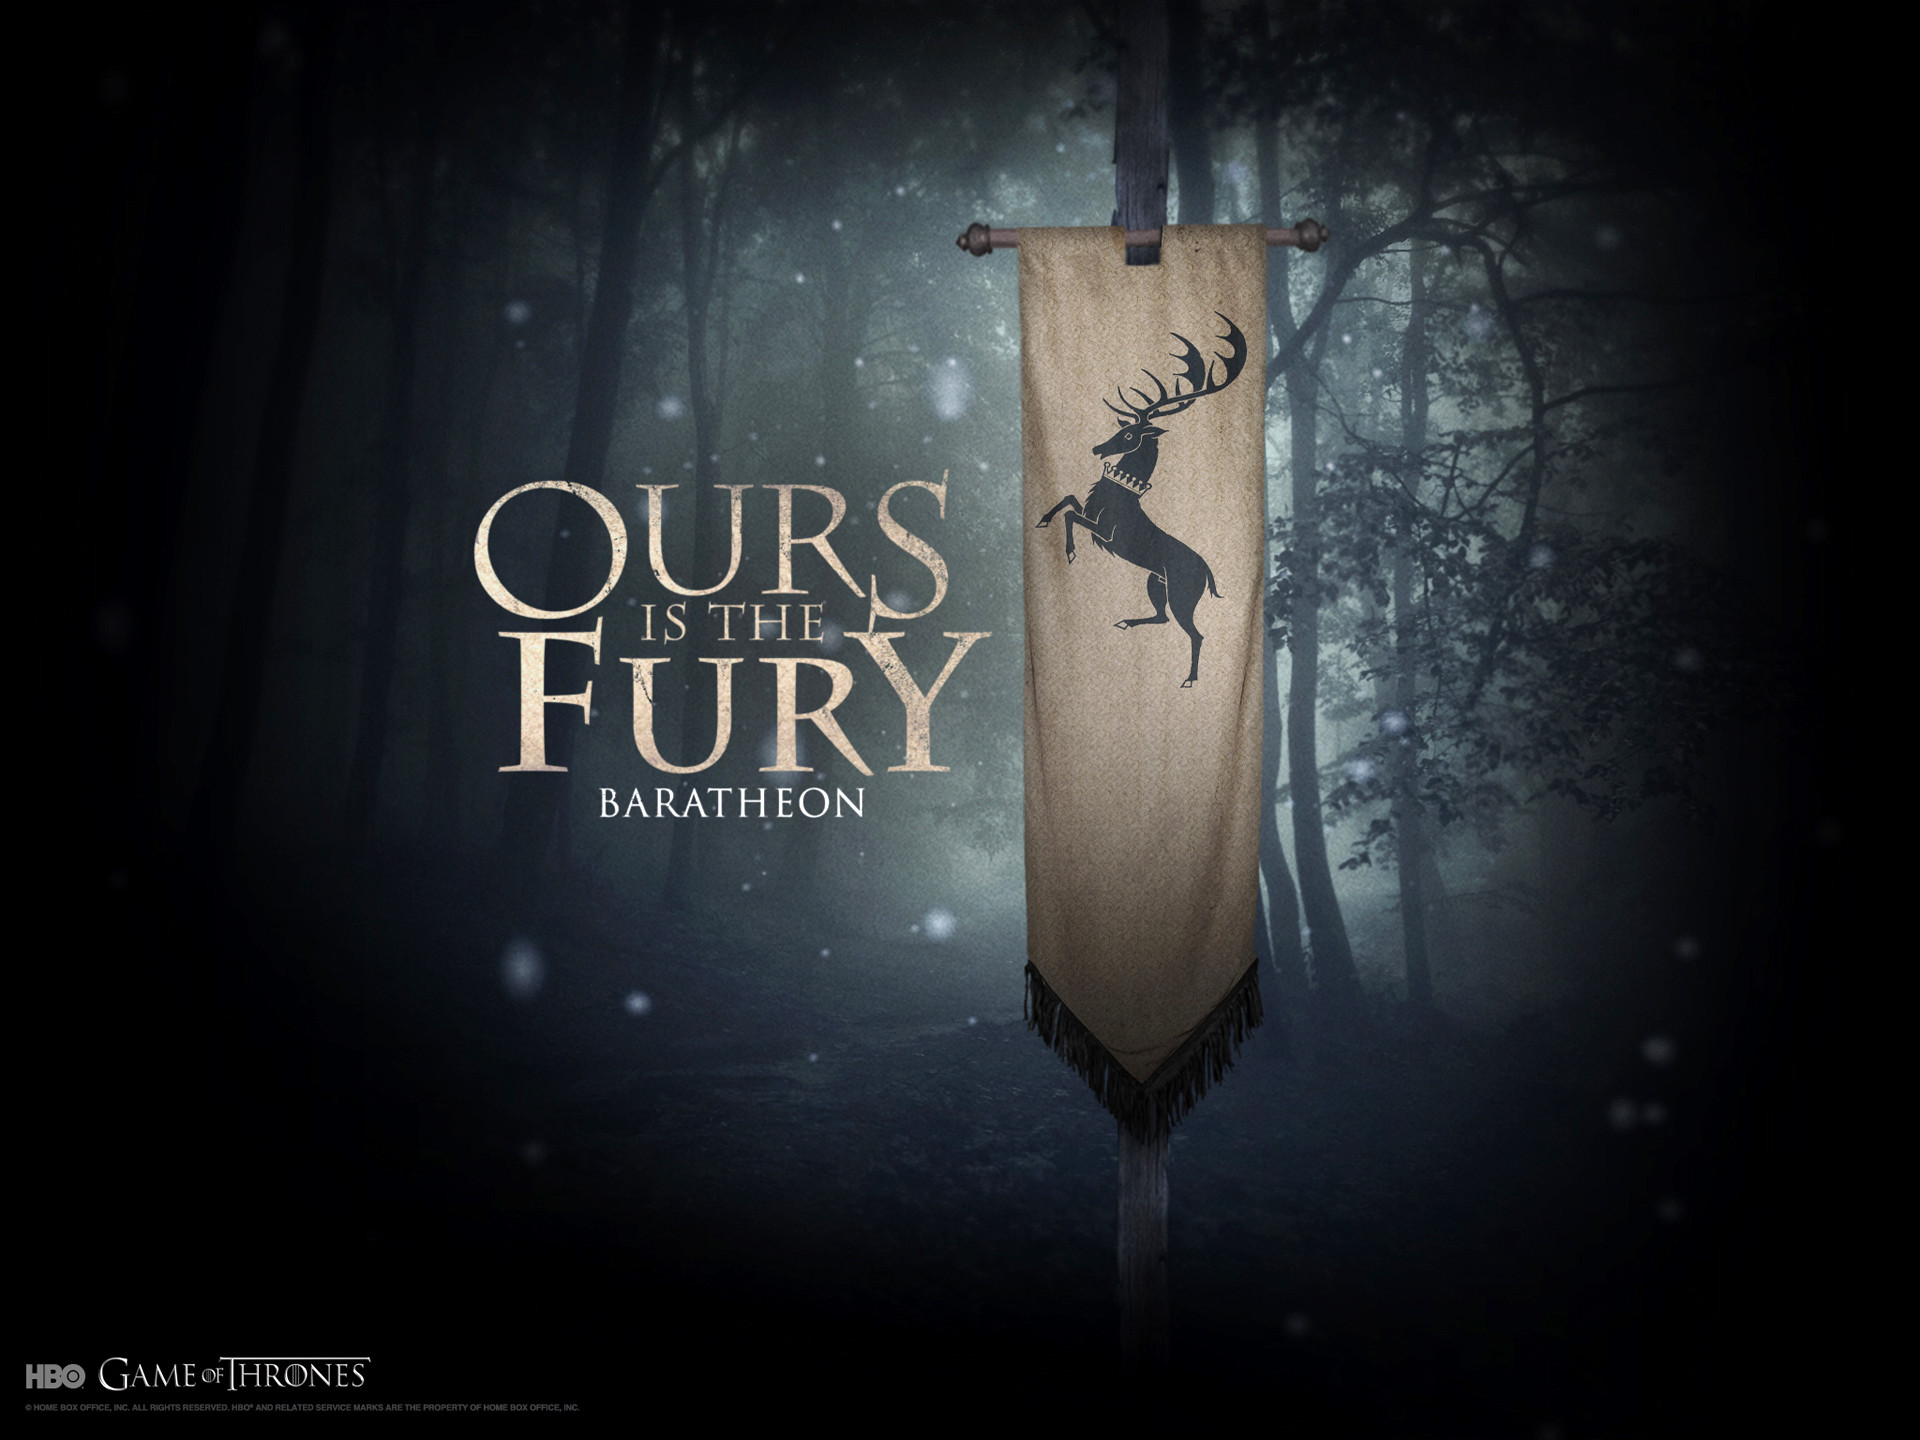 1920x1440 Game of Thrones A Song Of Ice And Fire sigil TV series Banner Stannis  Baratheon HBO George R. R. Mar wallpaper